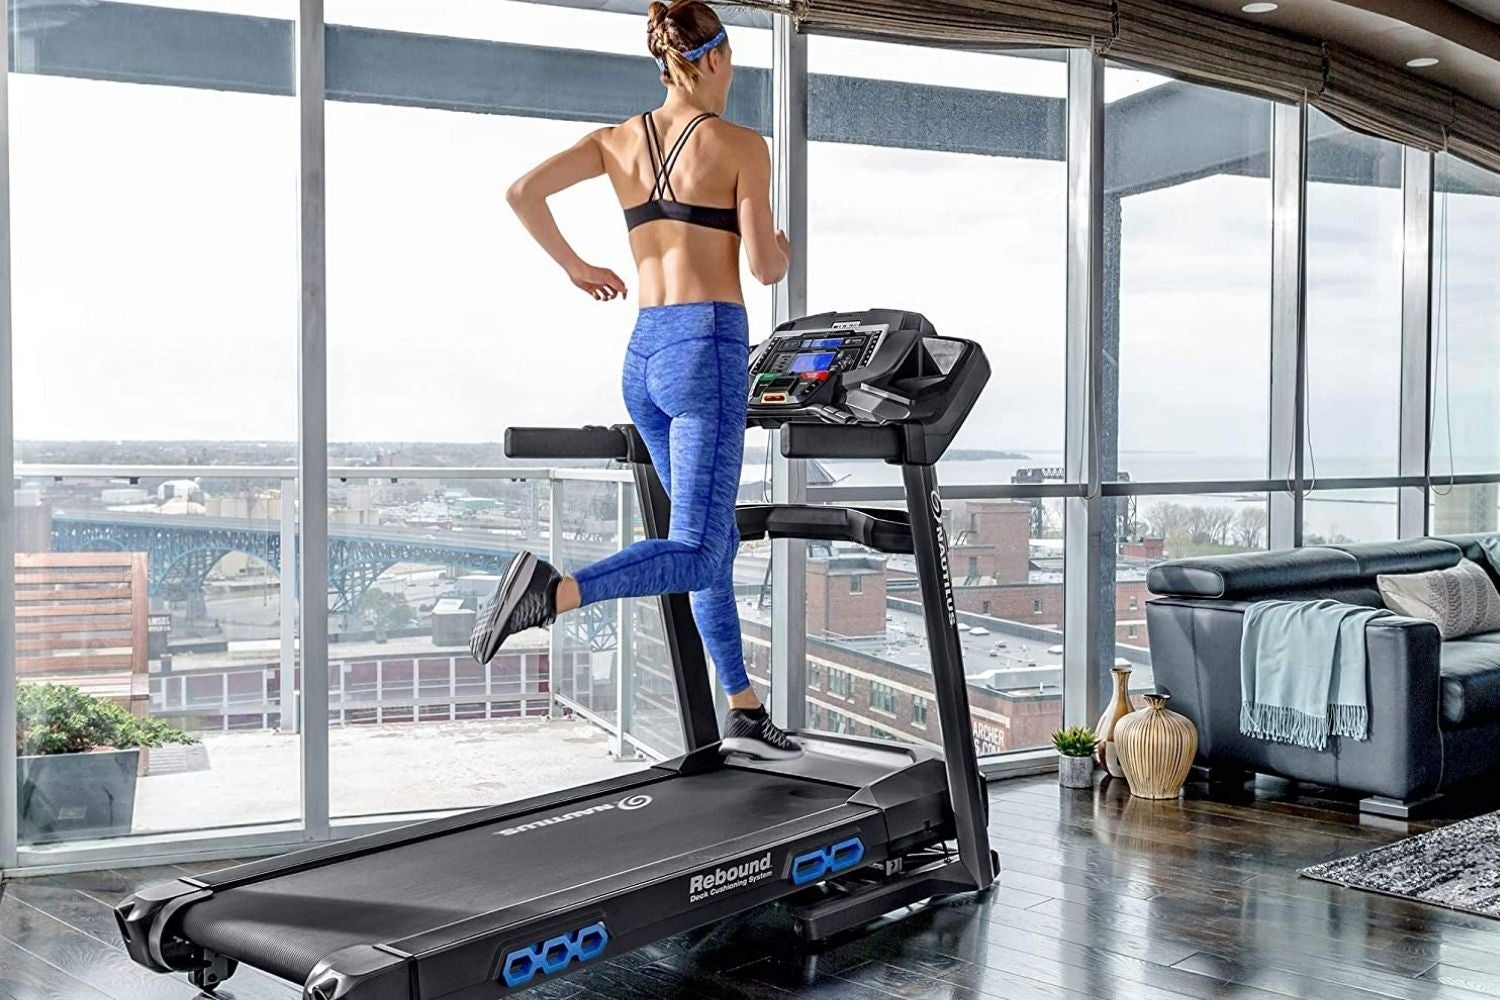 OMA Home Treadmills Calories and 3 Incline Positions for Running and Walking Exercise Max 2.25 CHP Electric Home Gym Treadmills with LED Display of Tracking Heart Rate Black